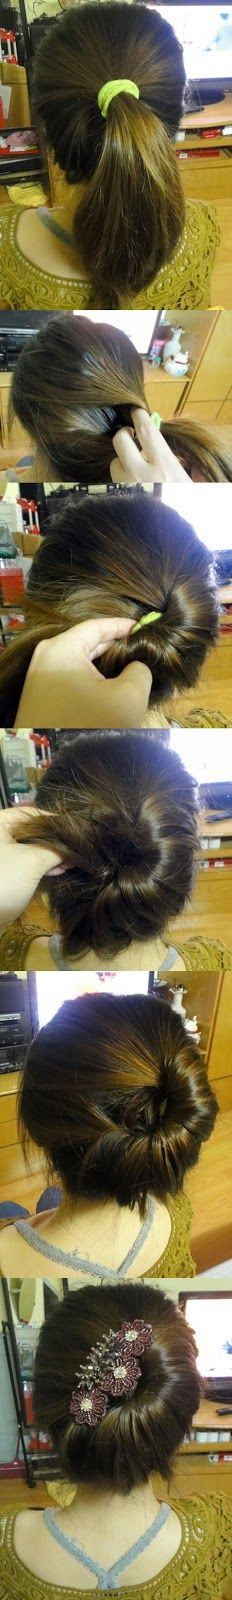 Make A Chignon For Your Hair, don't really care for the piece in her hair but love the idea